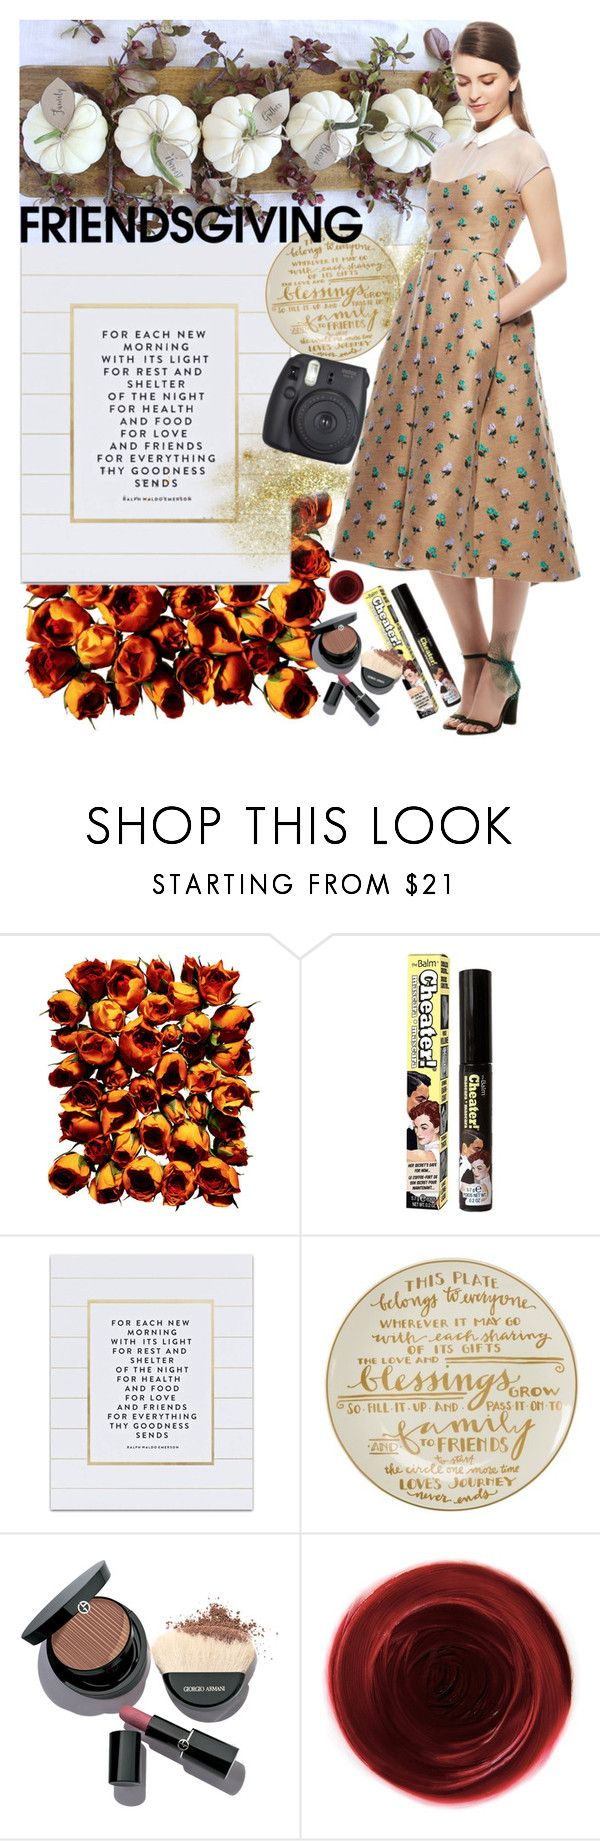 """""""Friendsgiving"""" by earthangell on Polyvore featuring Giorgio Armani, TheBalm, SS Print Shop, Primitives By Kathy, Rituel de Fille and Fujifilm"""